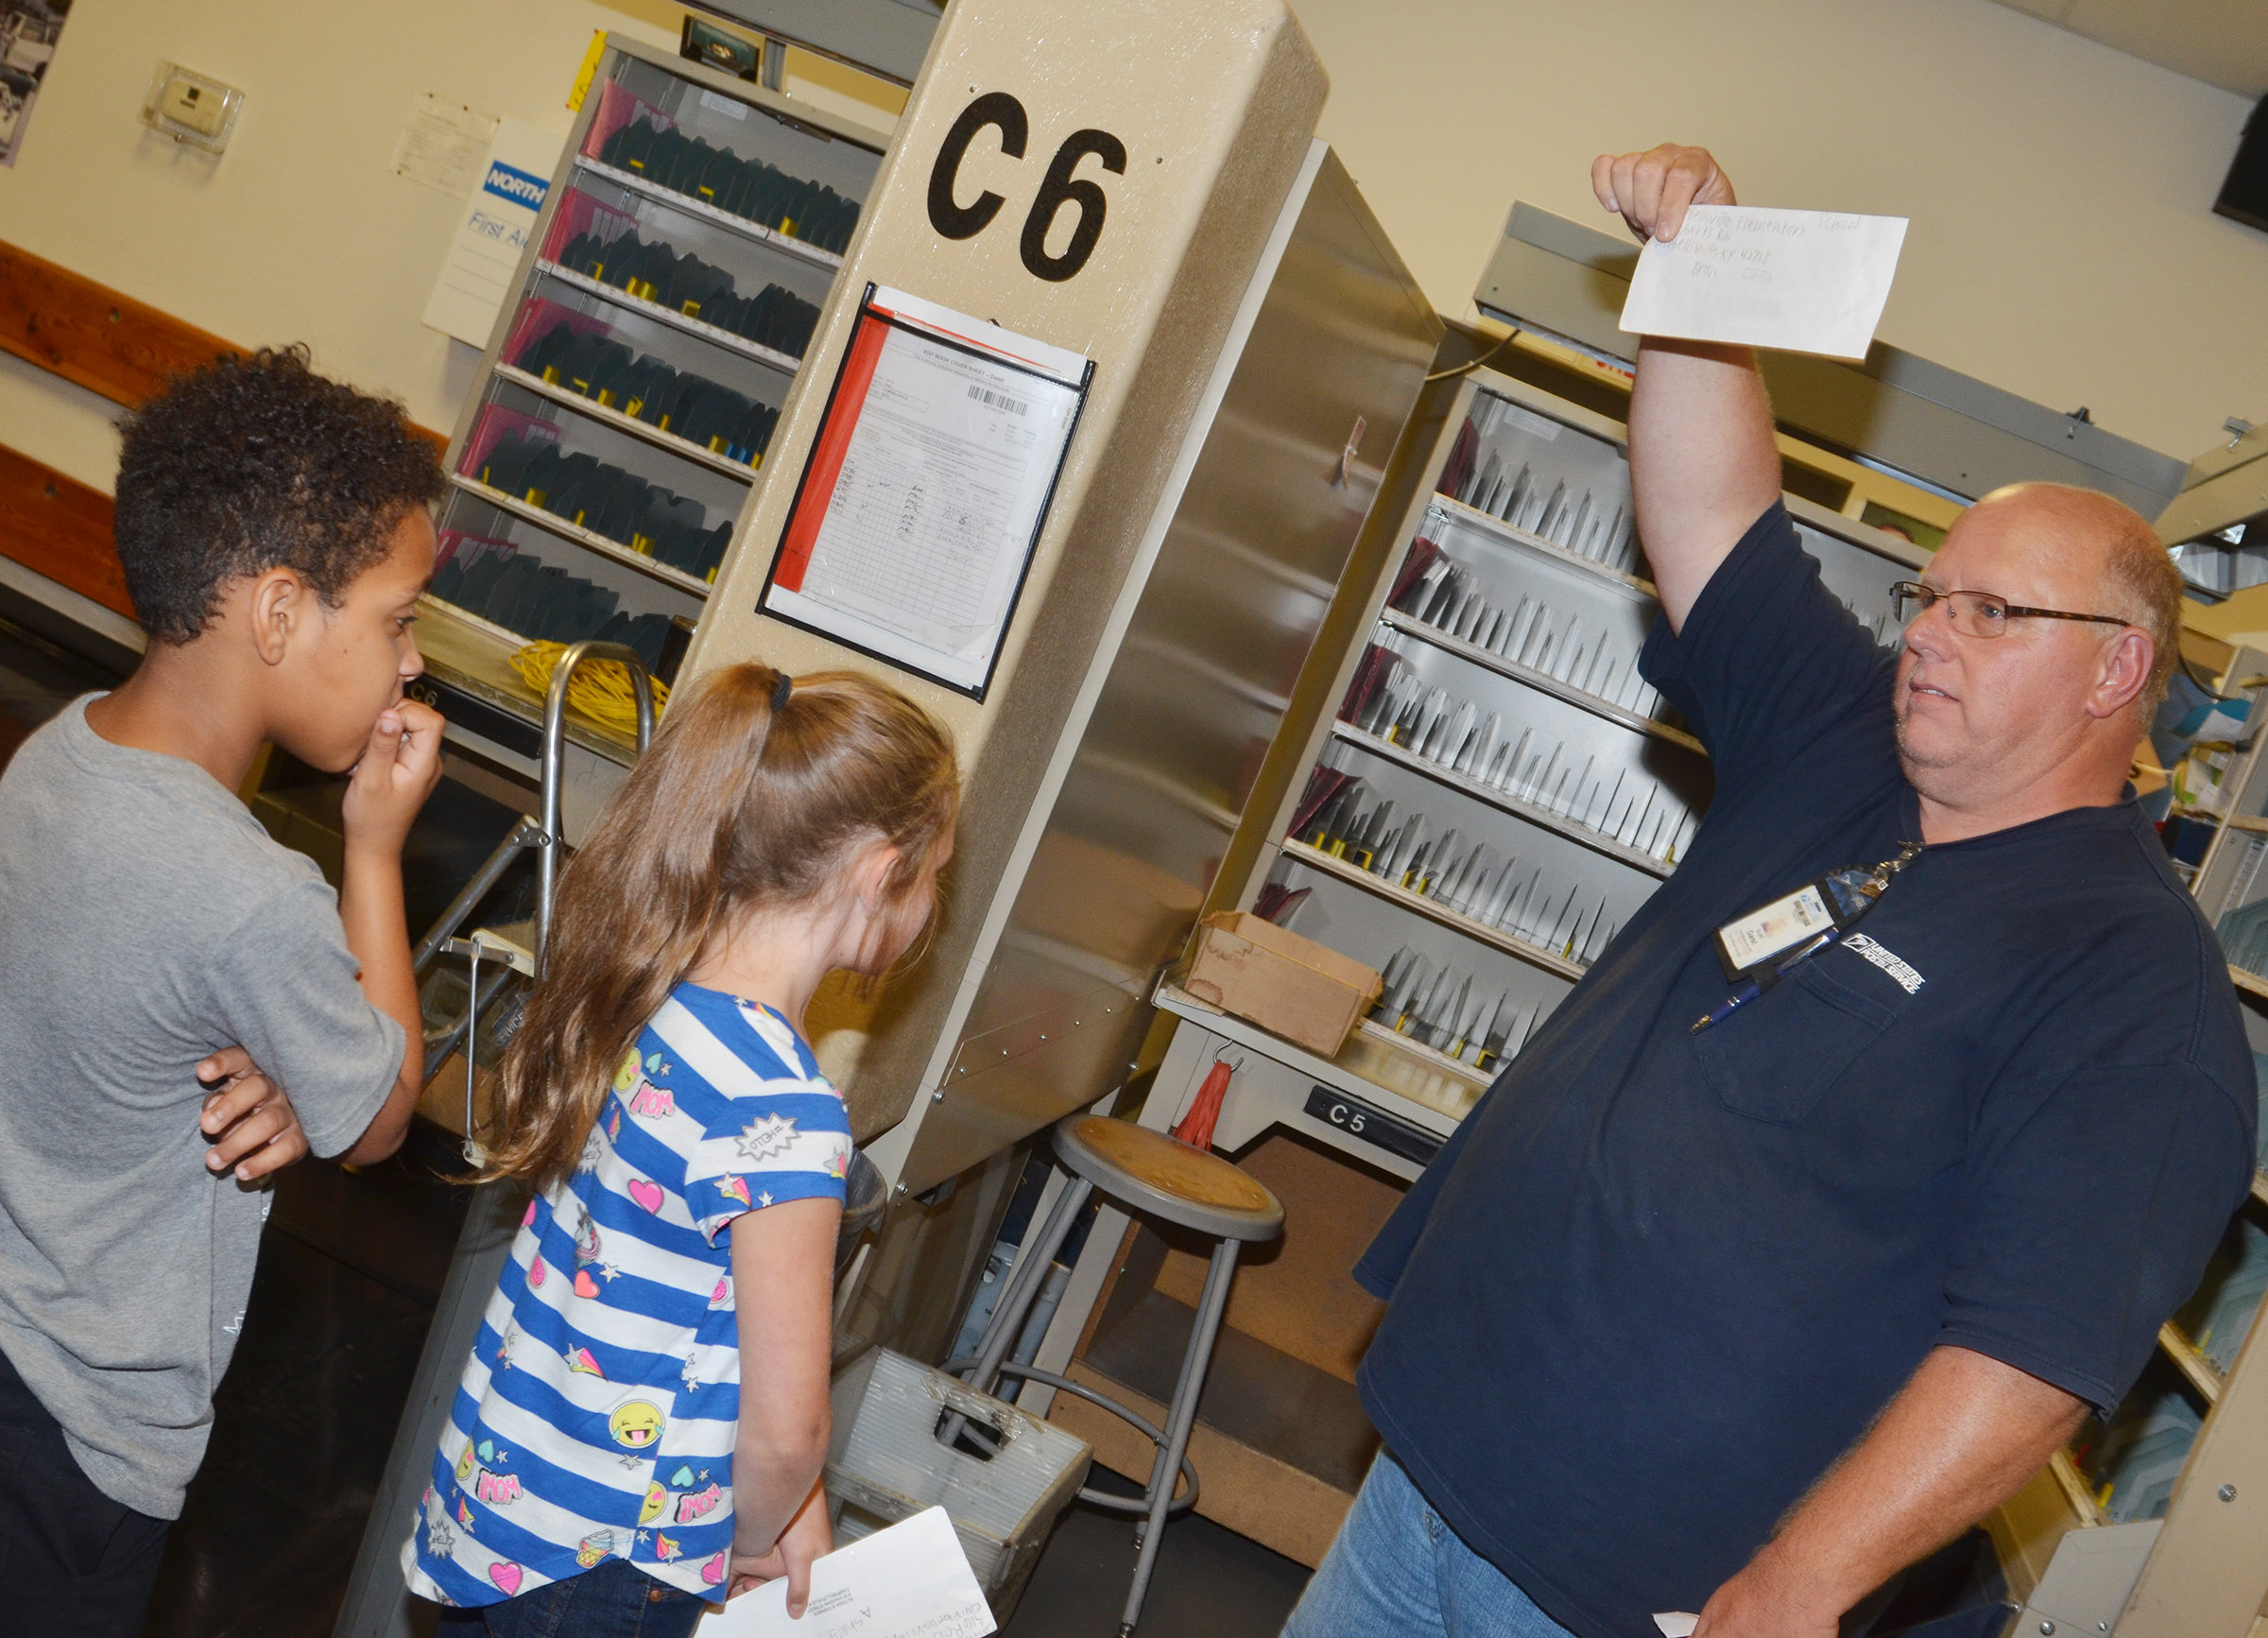 Campbellsville Post Office employee Scott Darst talks to CES students about how letters are sorted so they can be delivered.